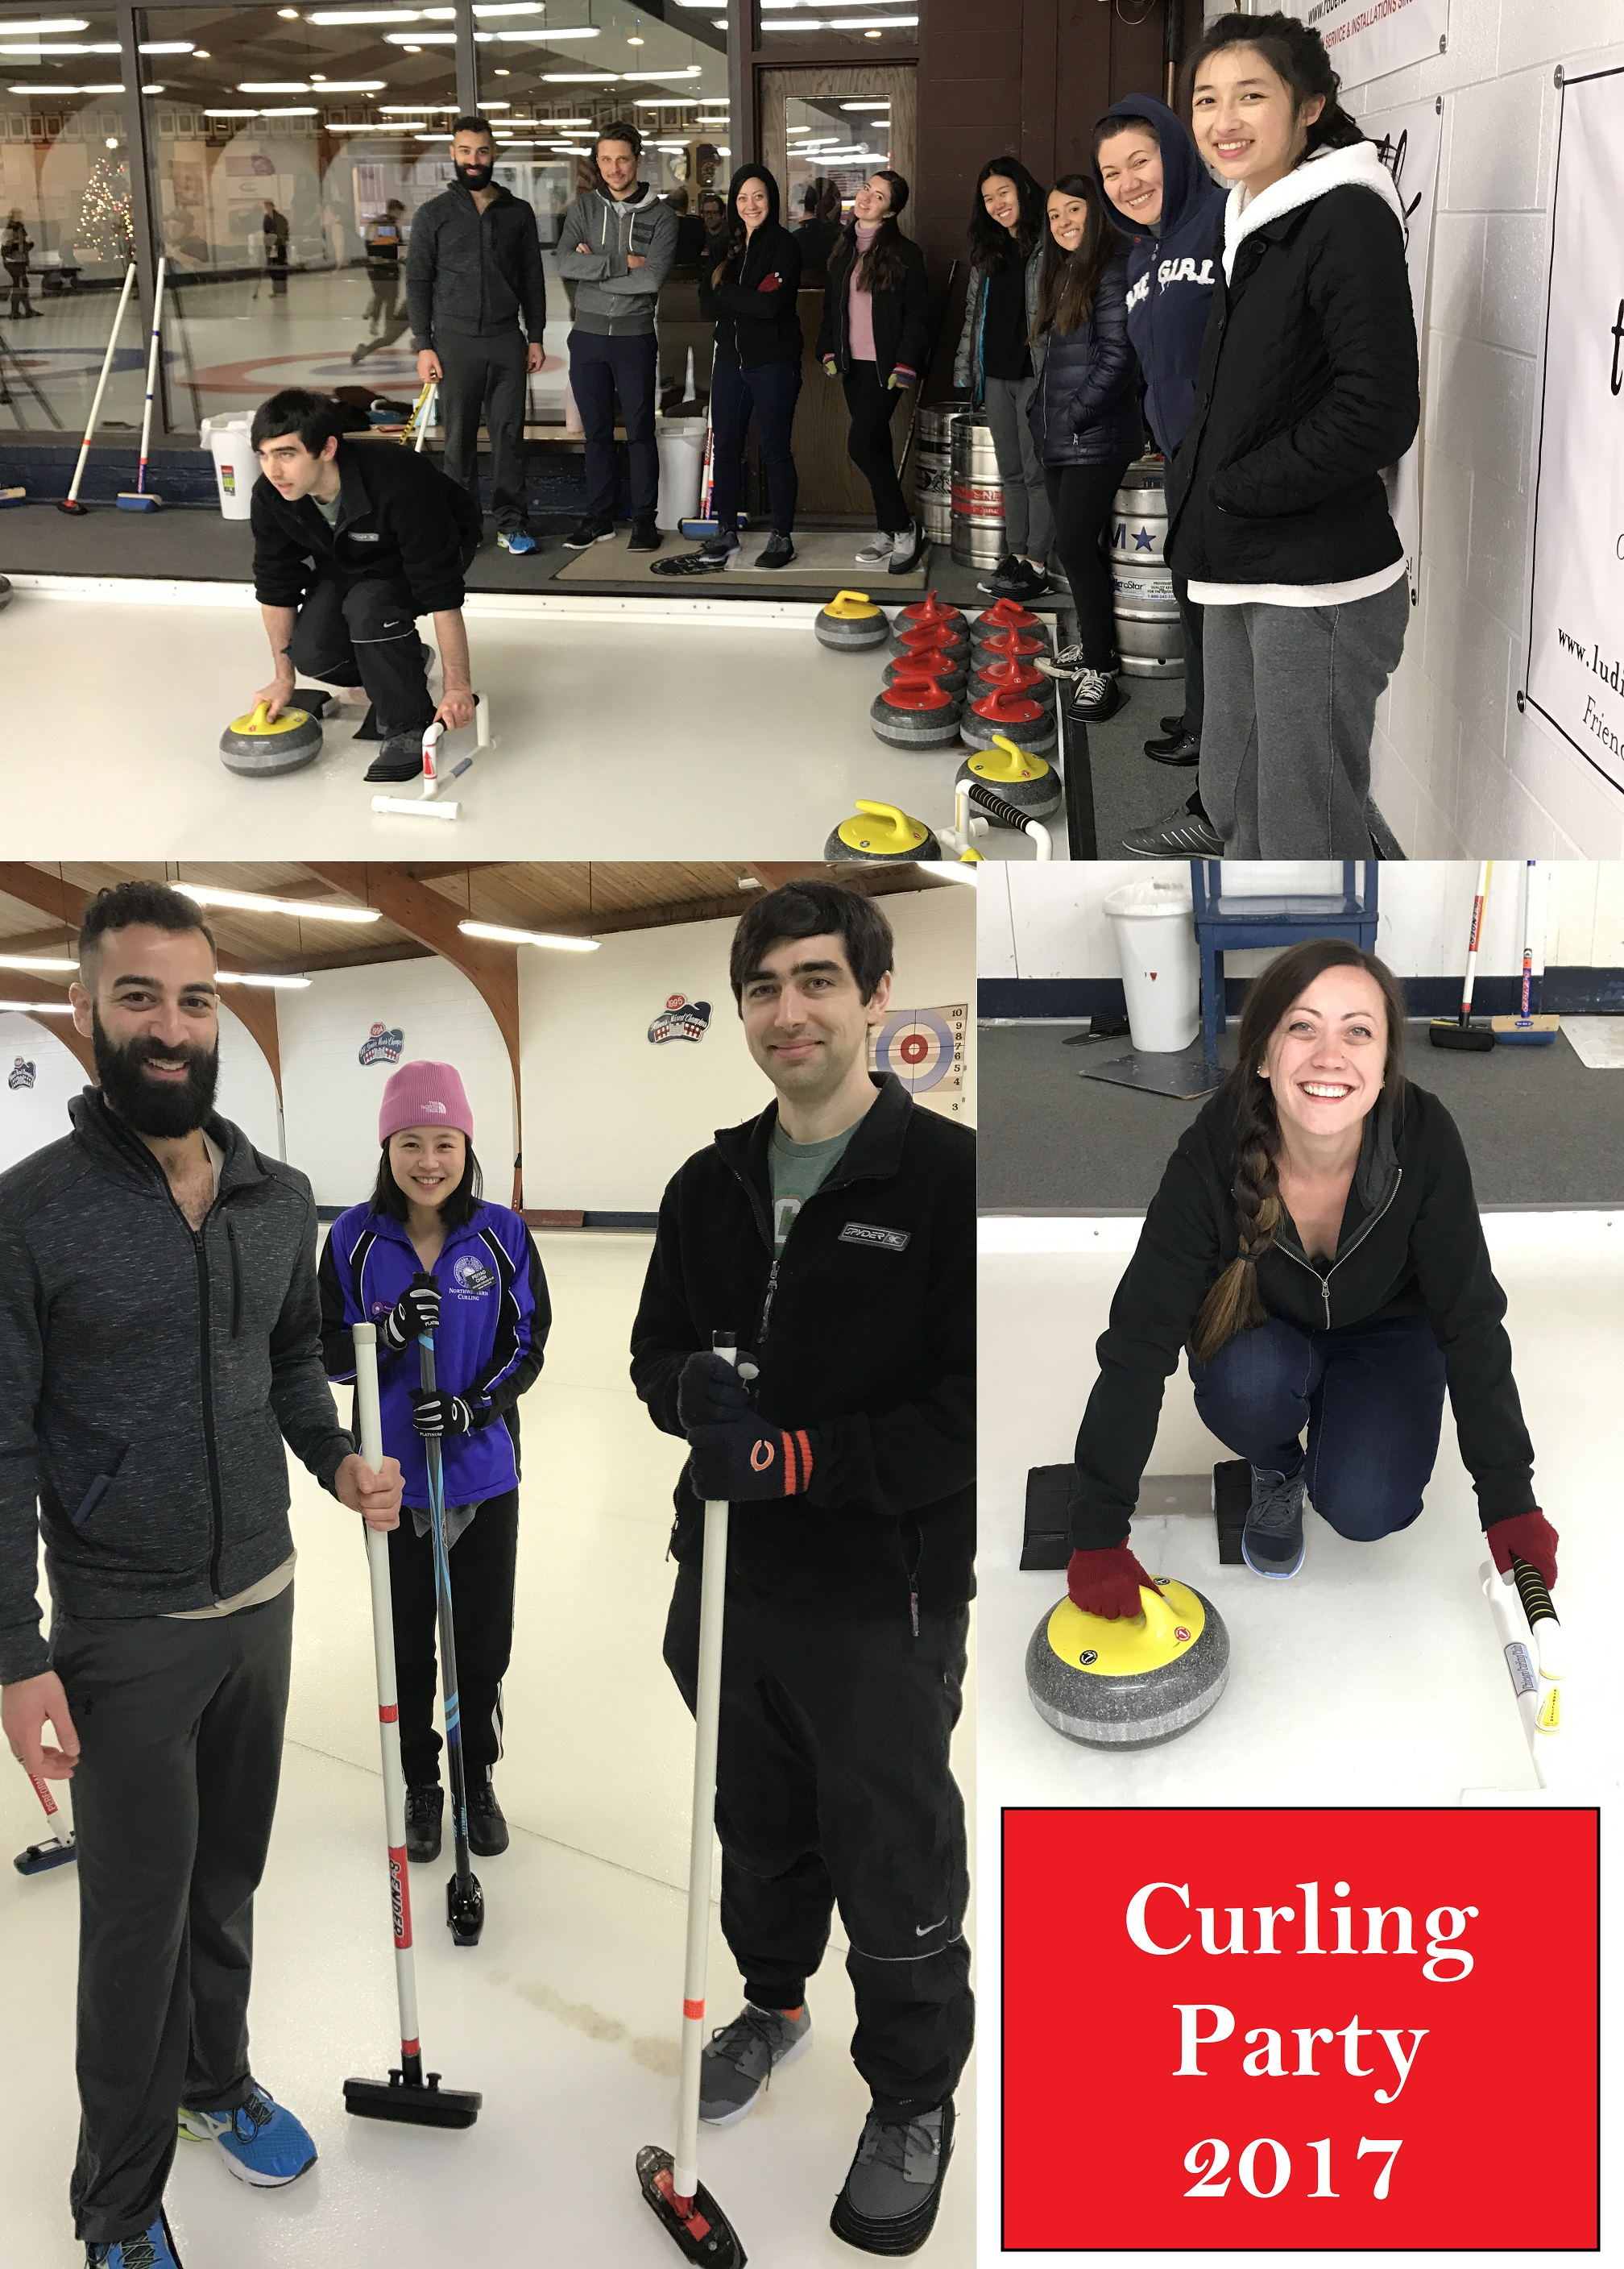 CurlingParty